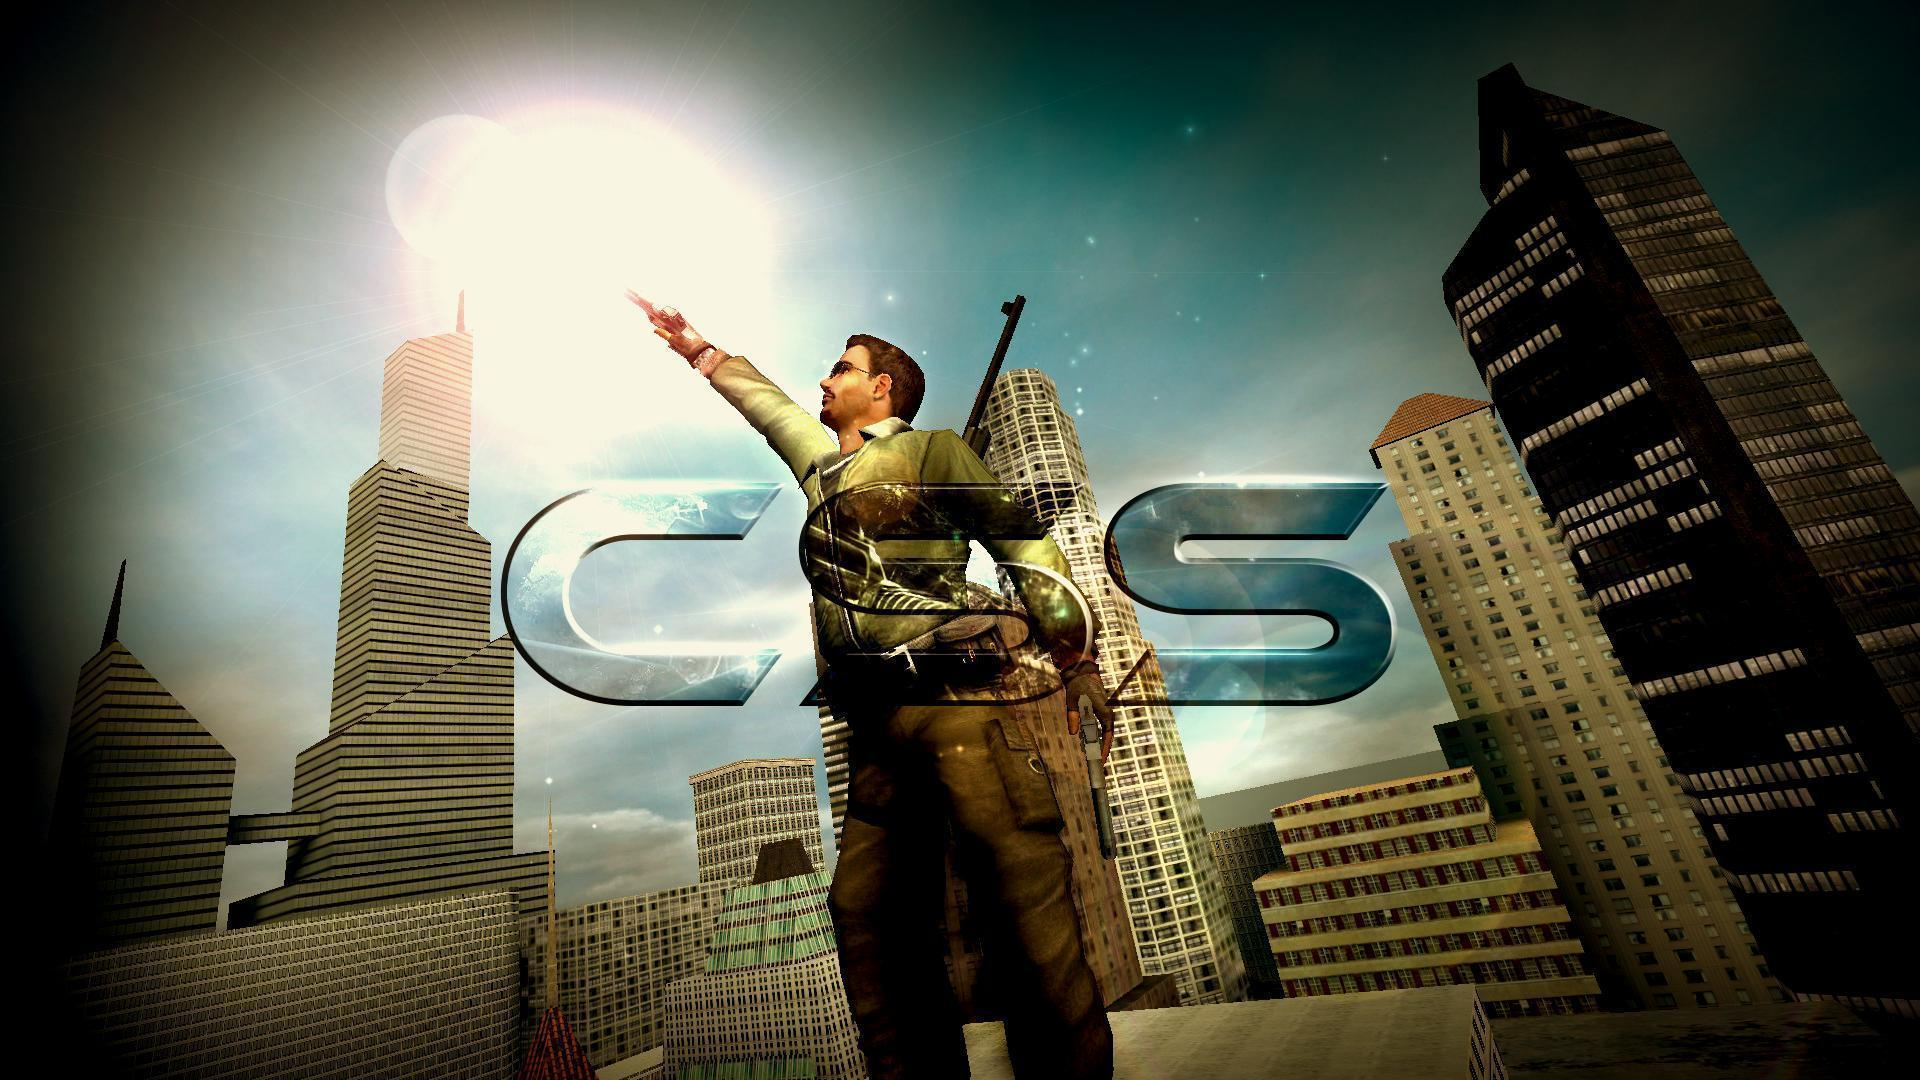 Geography Hd Wallpaper Counter Strike Source Wallpapers Wallpaper Cave